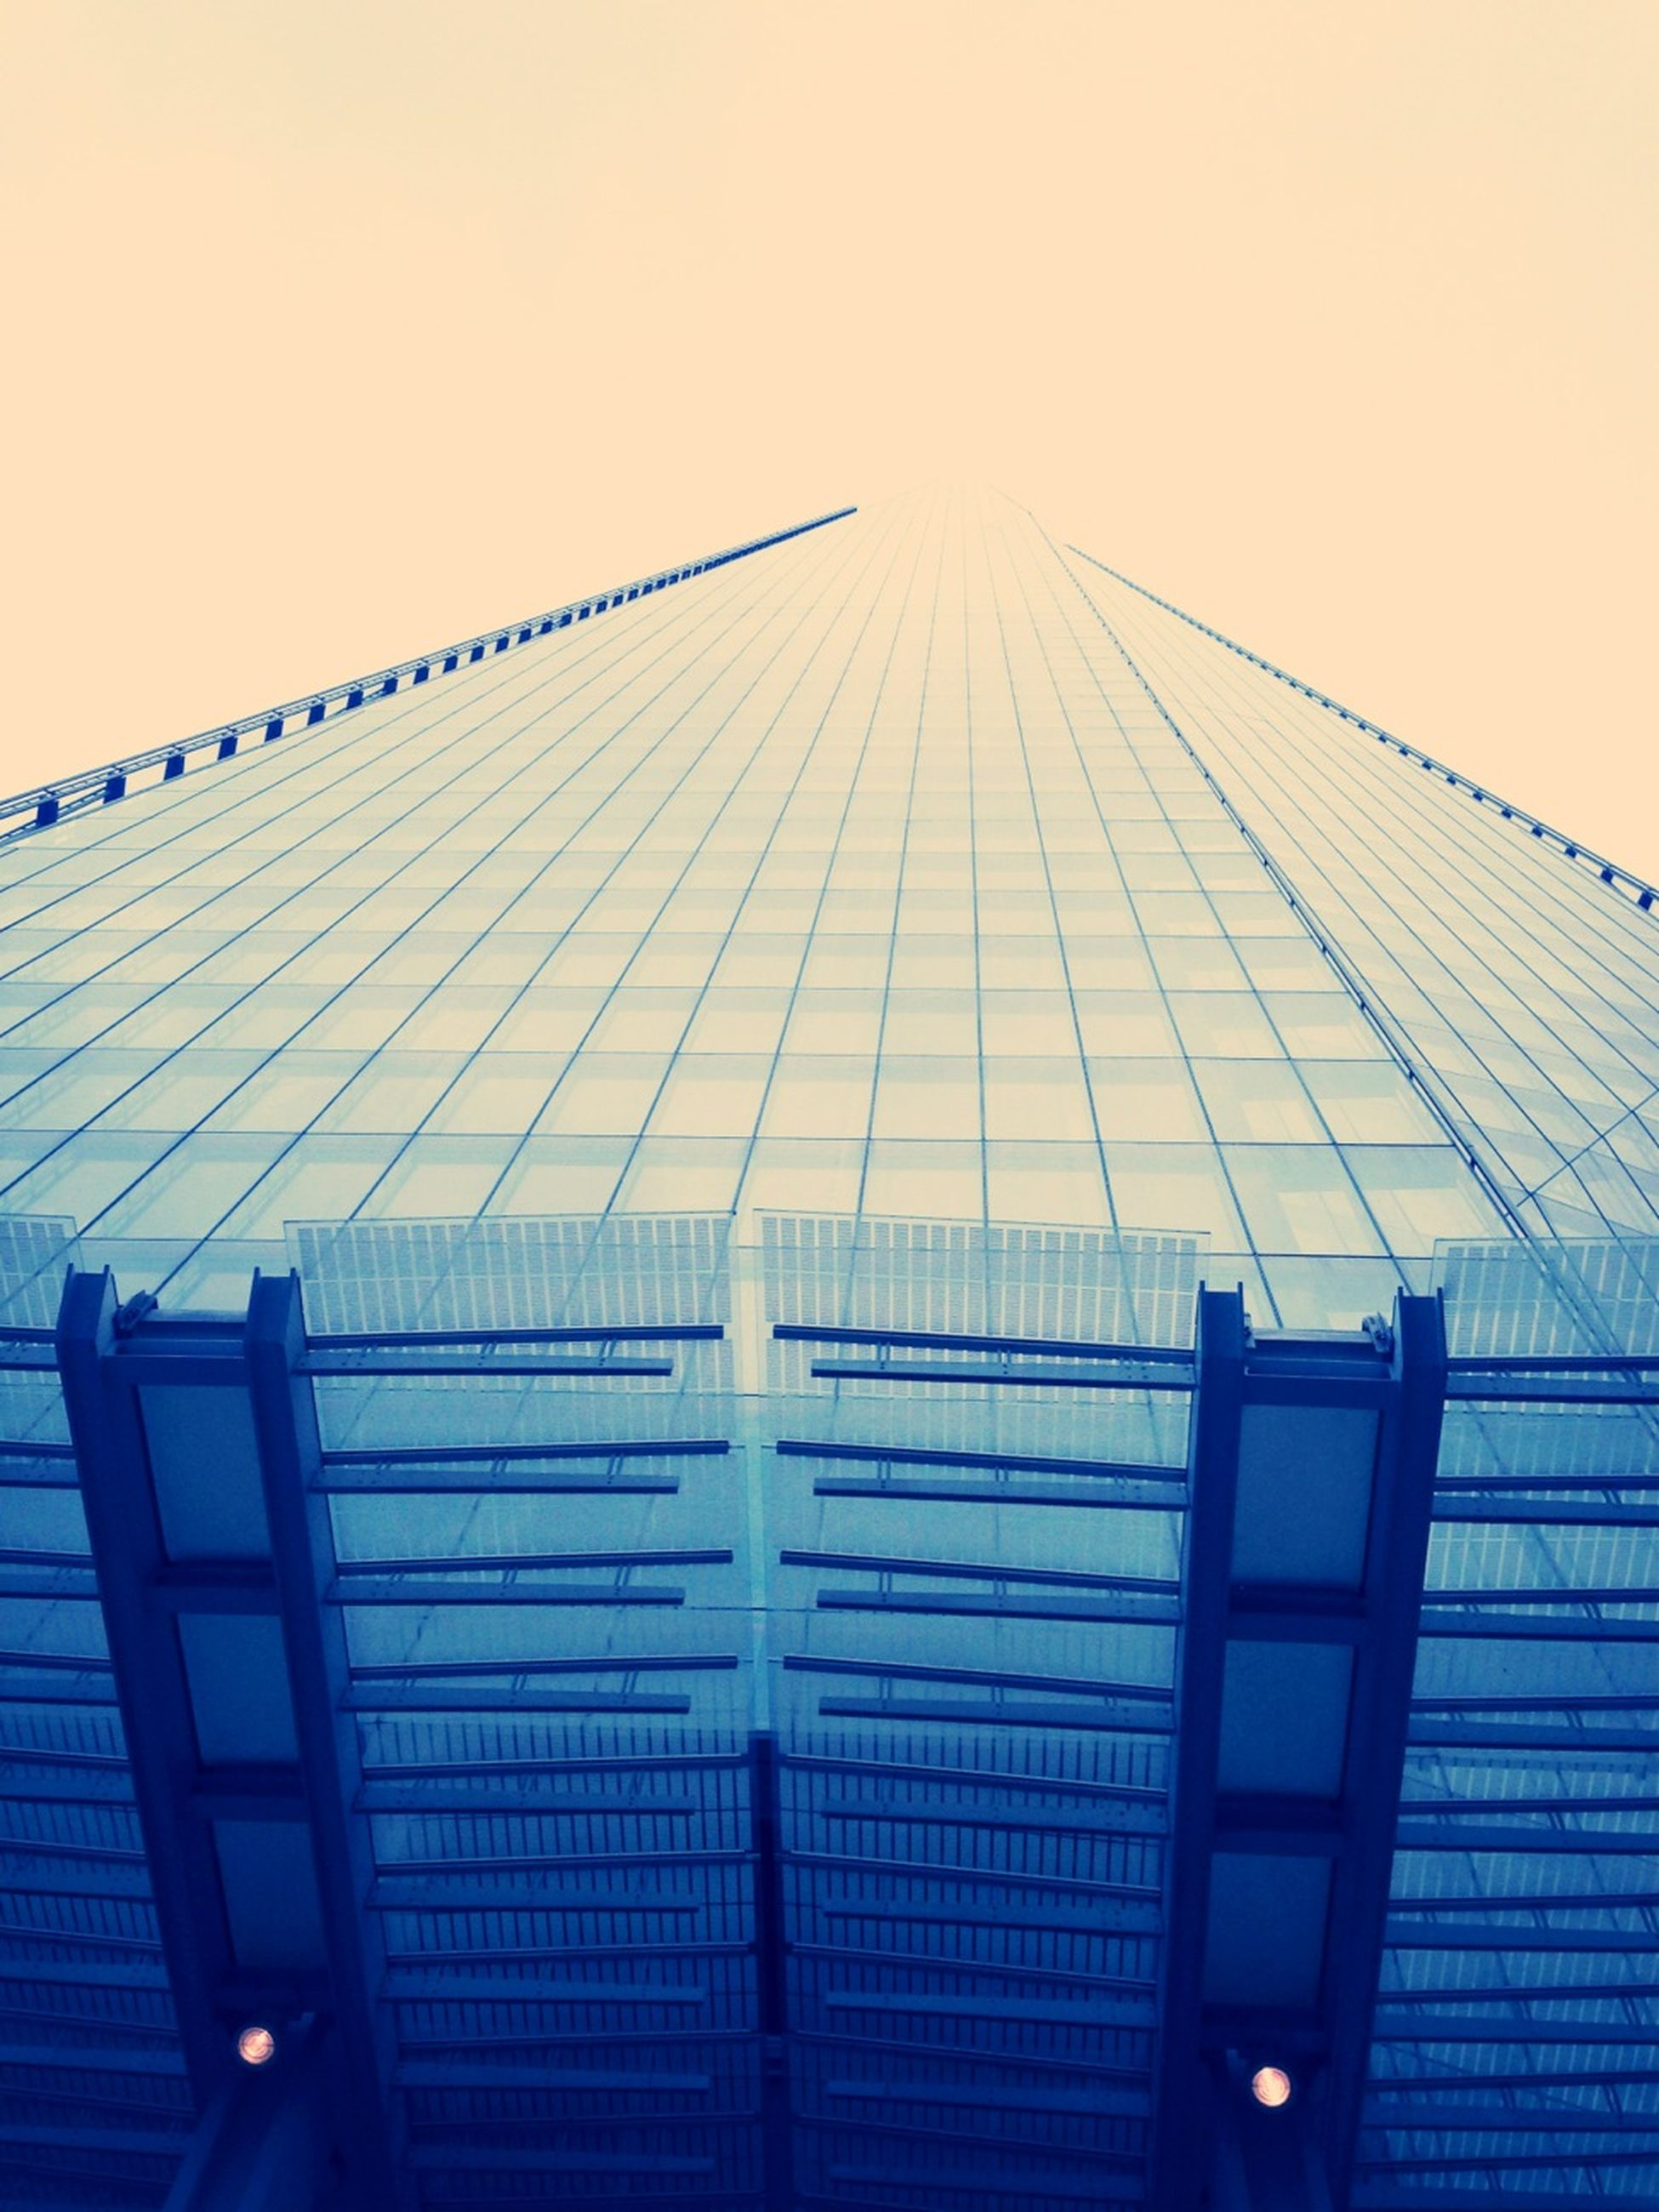 low angle view, architecture, built structure, clear sky, building exterior, modern, sky, office building, skyscraper, city, outdoors, day, no people, building, tall - high, copy space, development, pattern, glass - material, connection